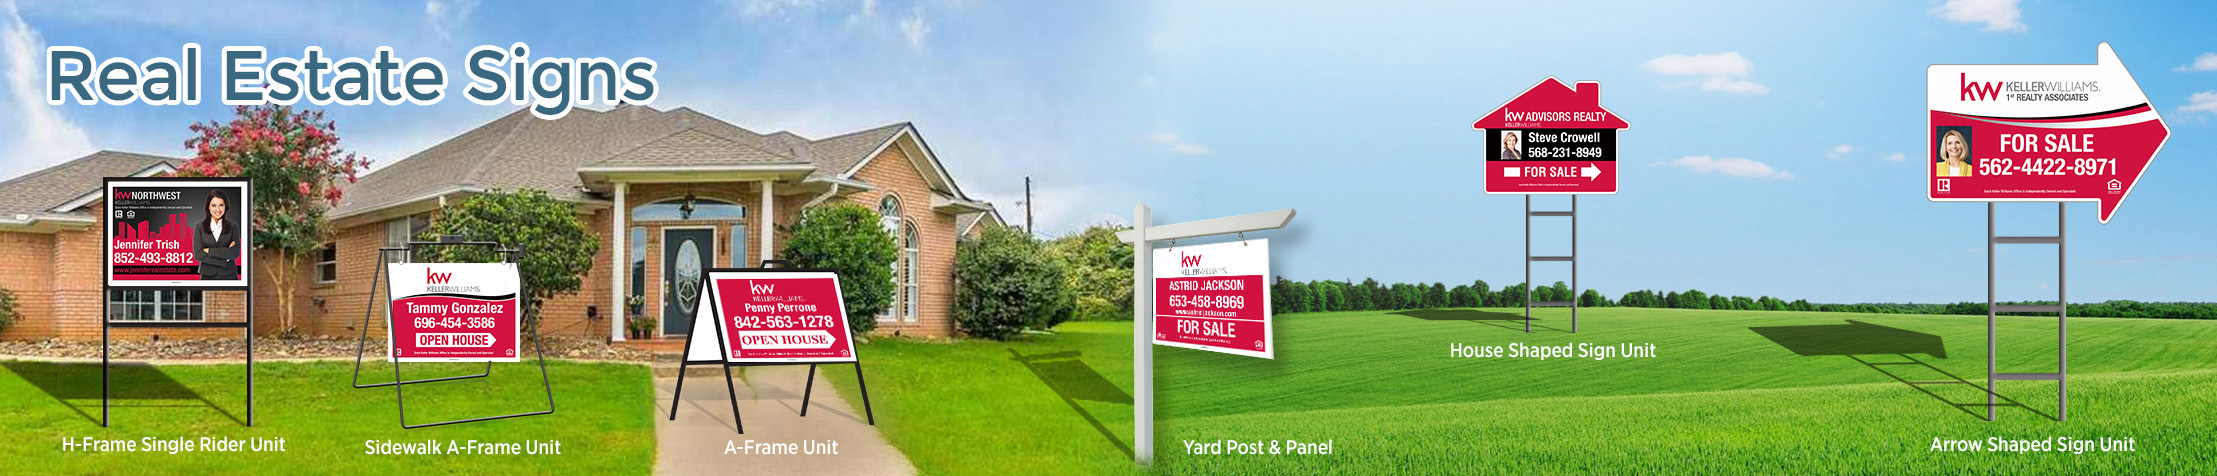 Keller Williams Real Estate Signs